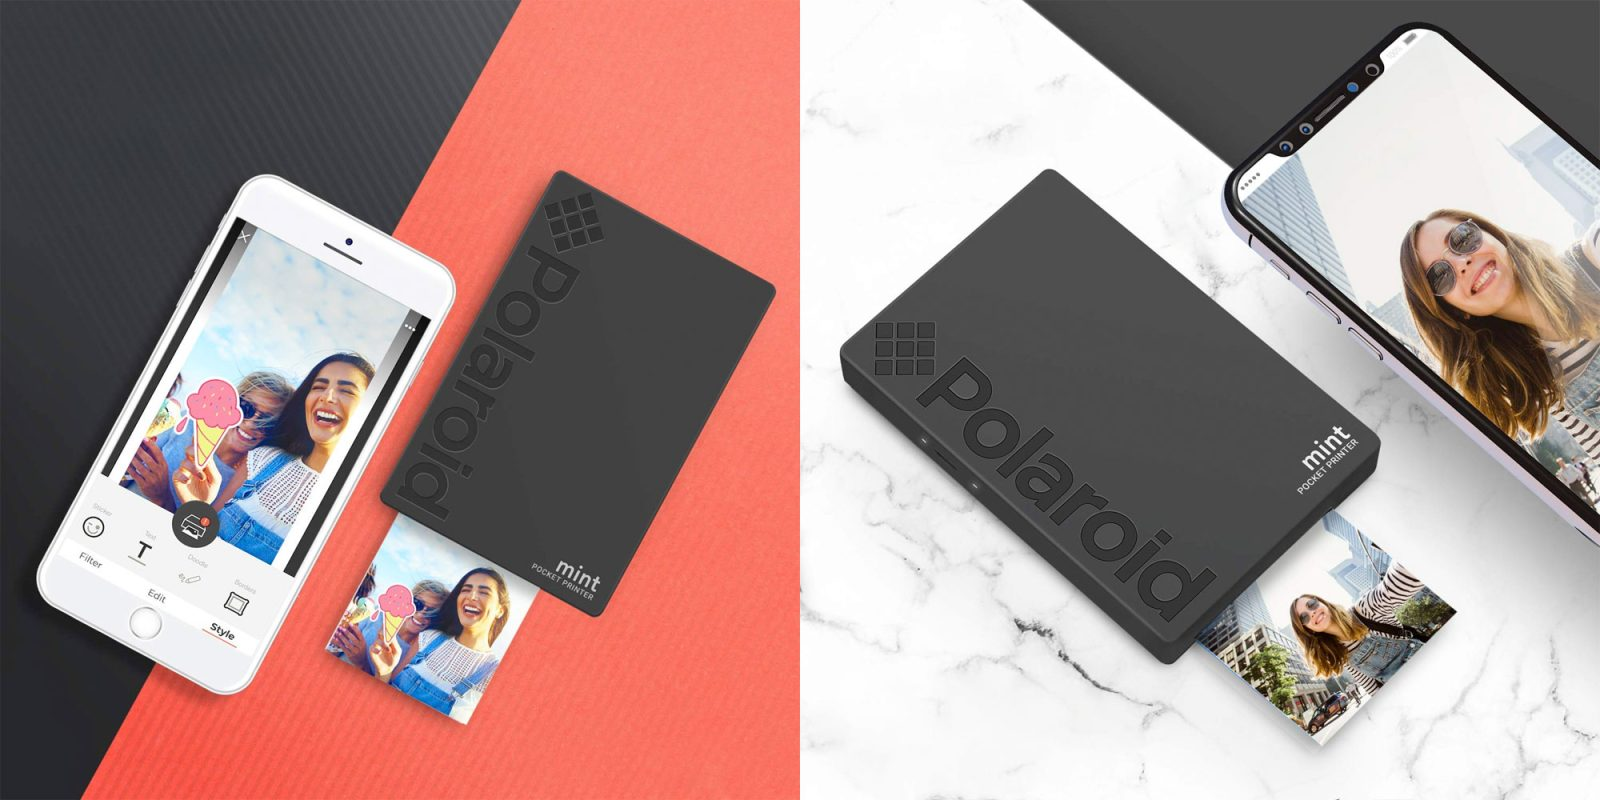 Save big on Polaroid cameras and printers at Amazon with prices from $67.50